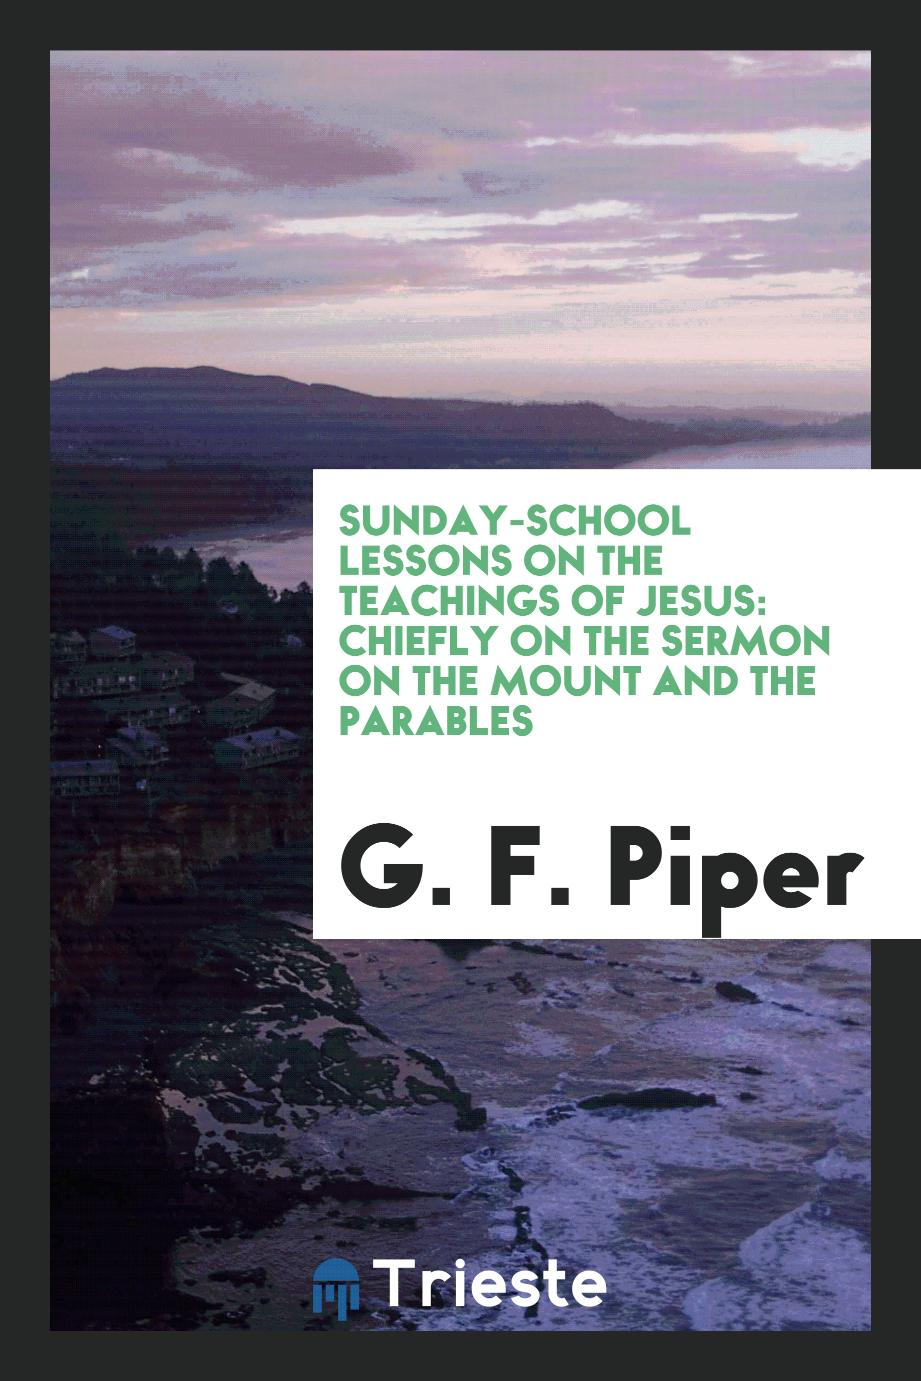 Sunday-School Lessons on the Teachings of Jesus: Chiefly on the Sermon on the Mount and the Parables